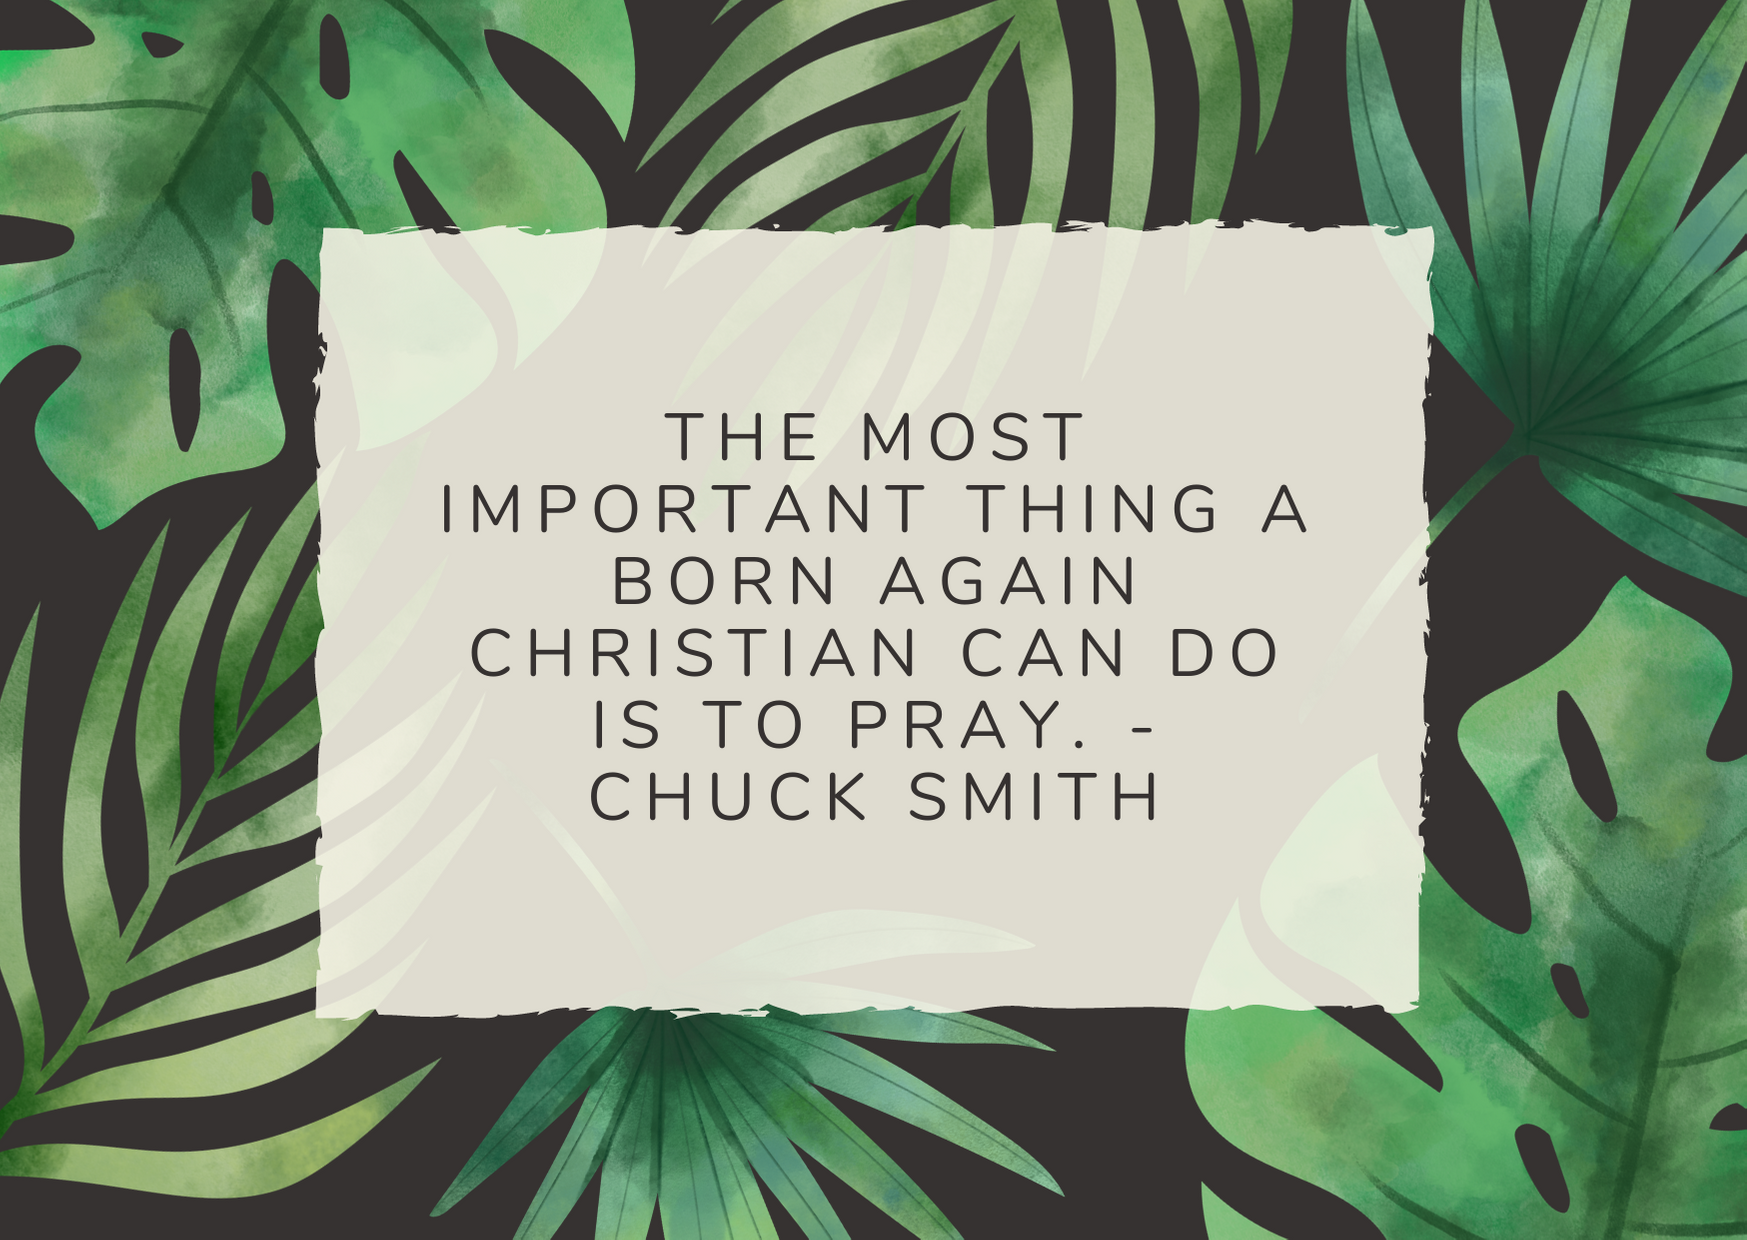 The most important thing a born again Christian can do is to pray. - Chuck Smith